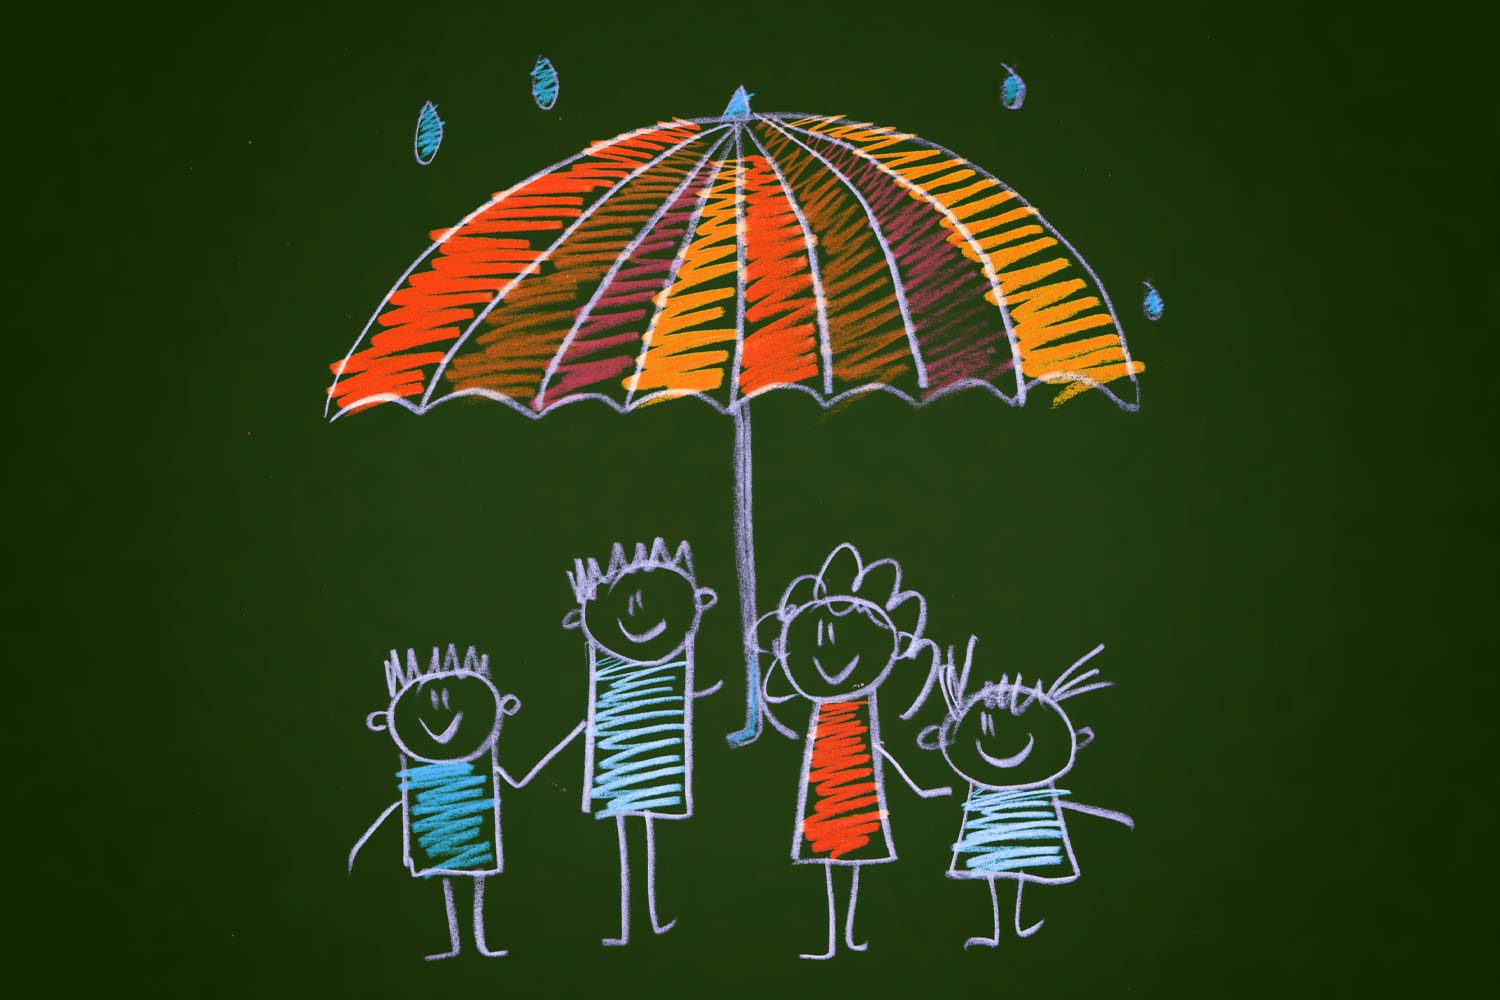 Child's drawing of a family under an umbrella